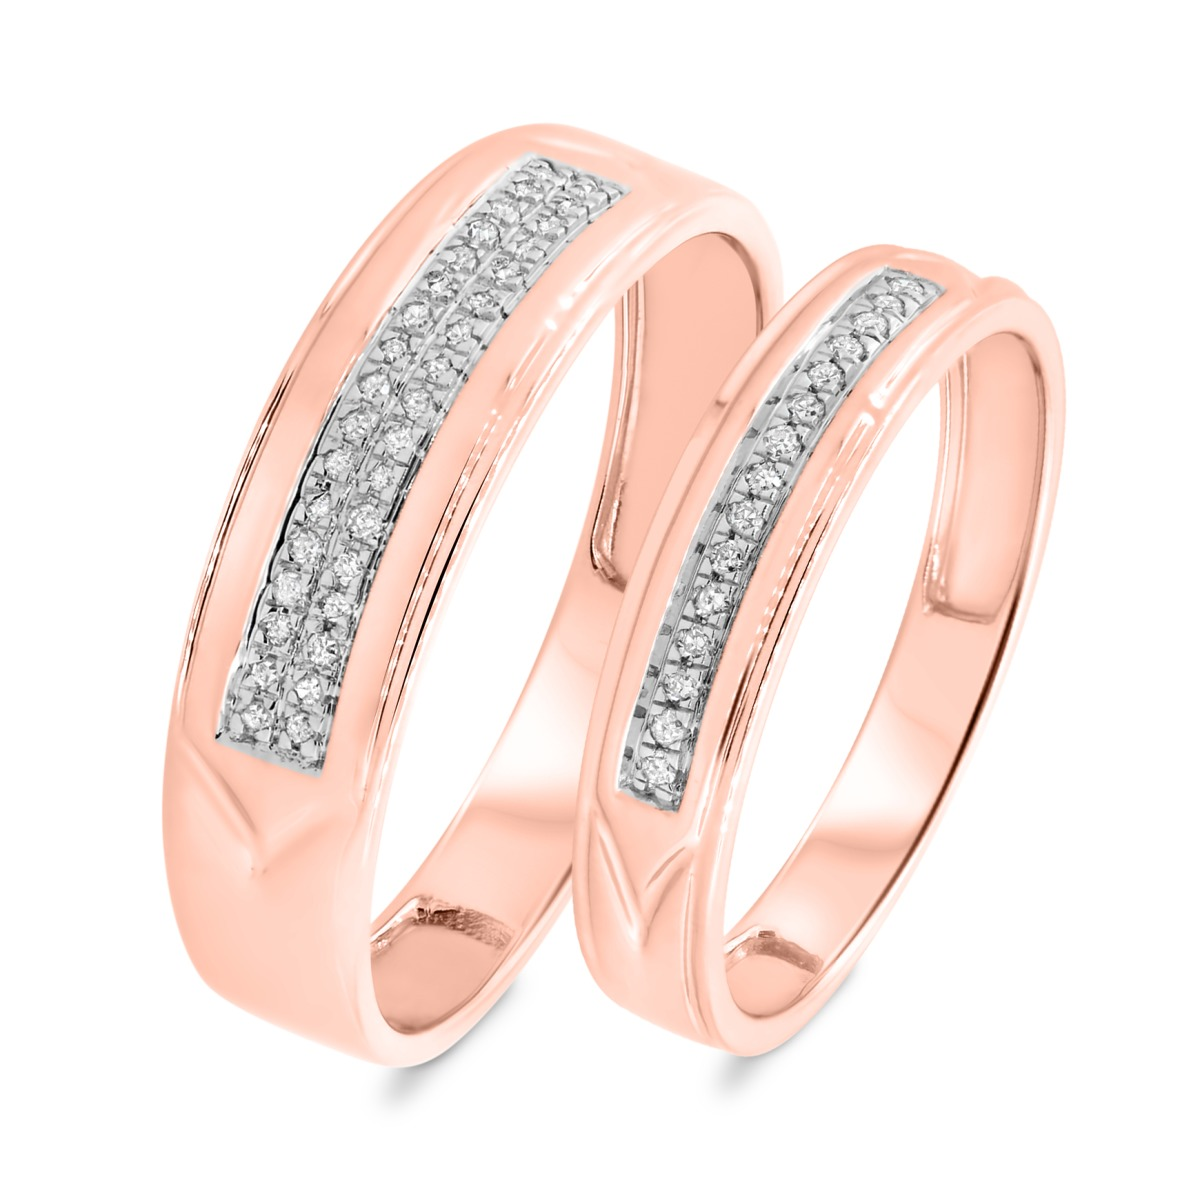 1/8 CT. T.W. Diamond Matching Wedding Band Set 10K Rose Gold